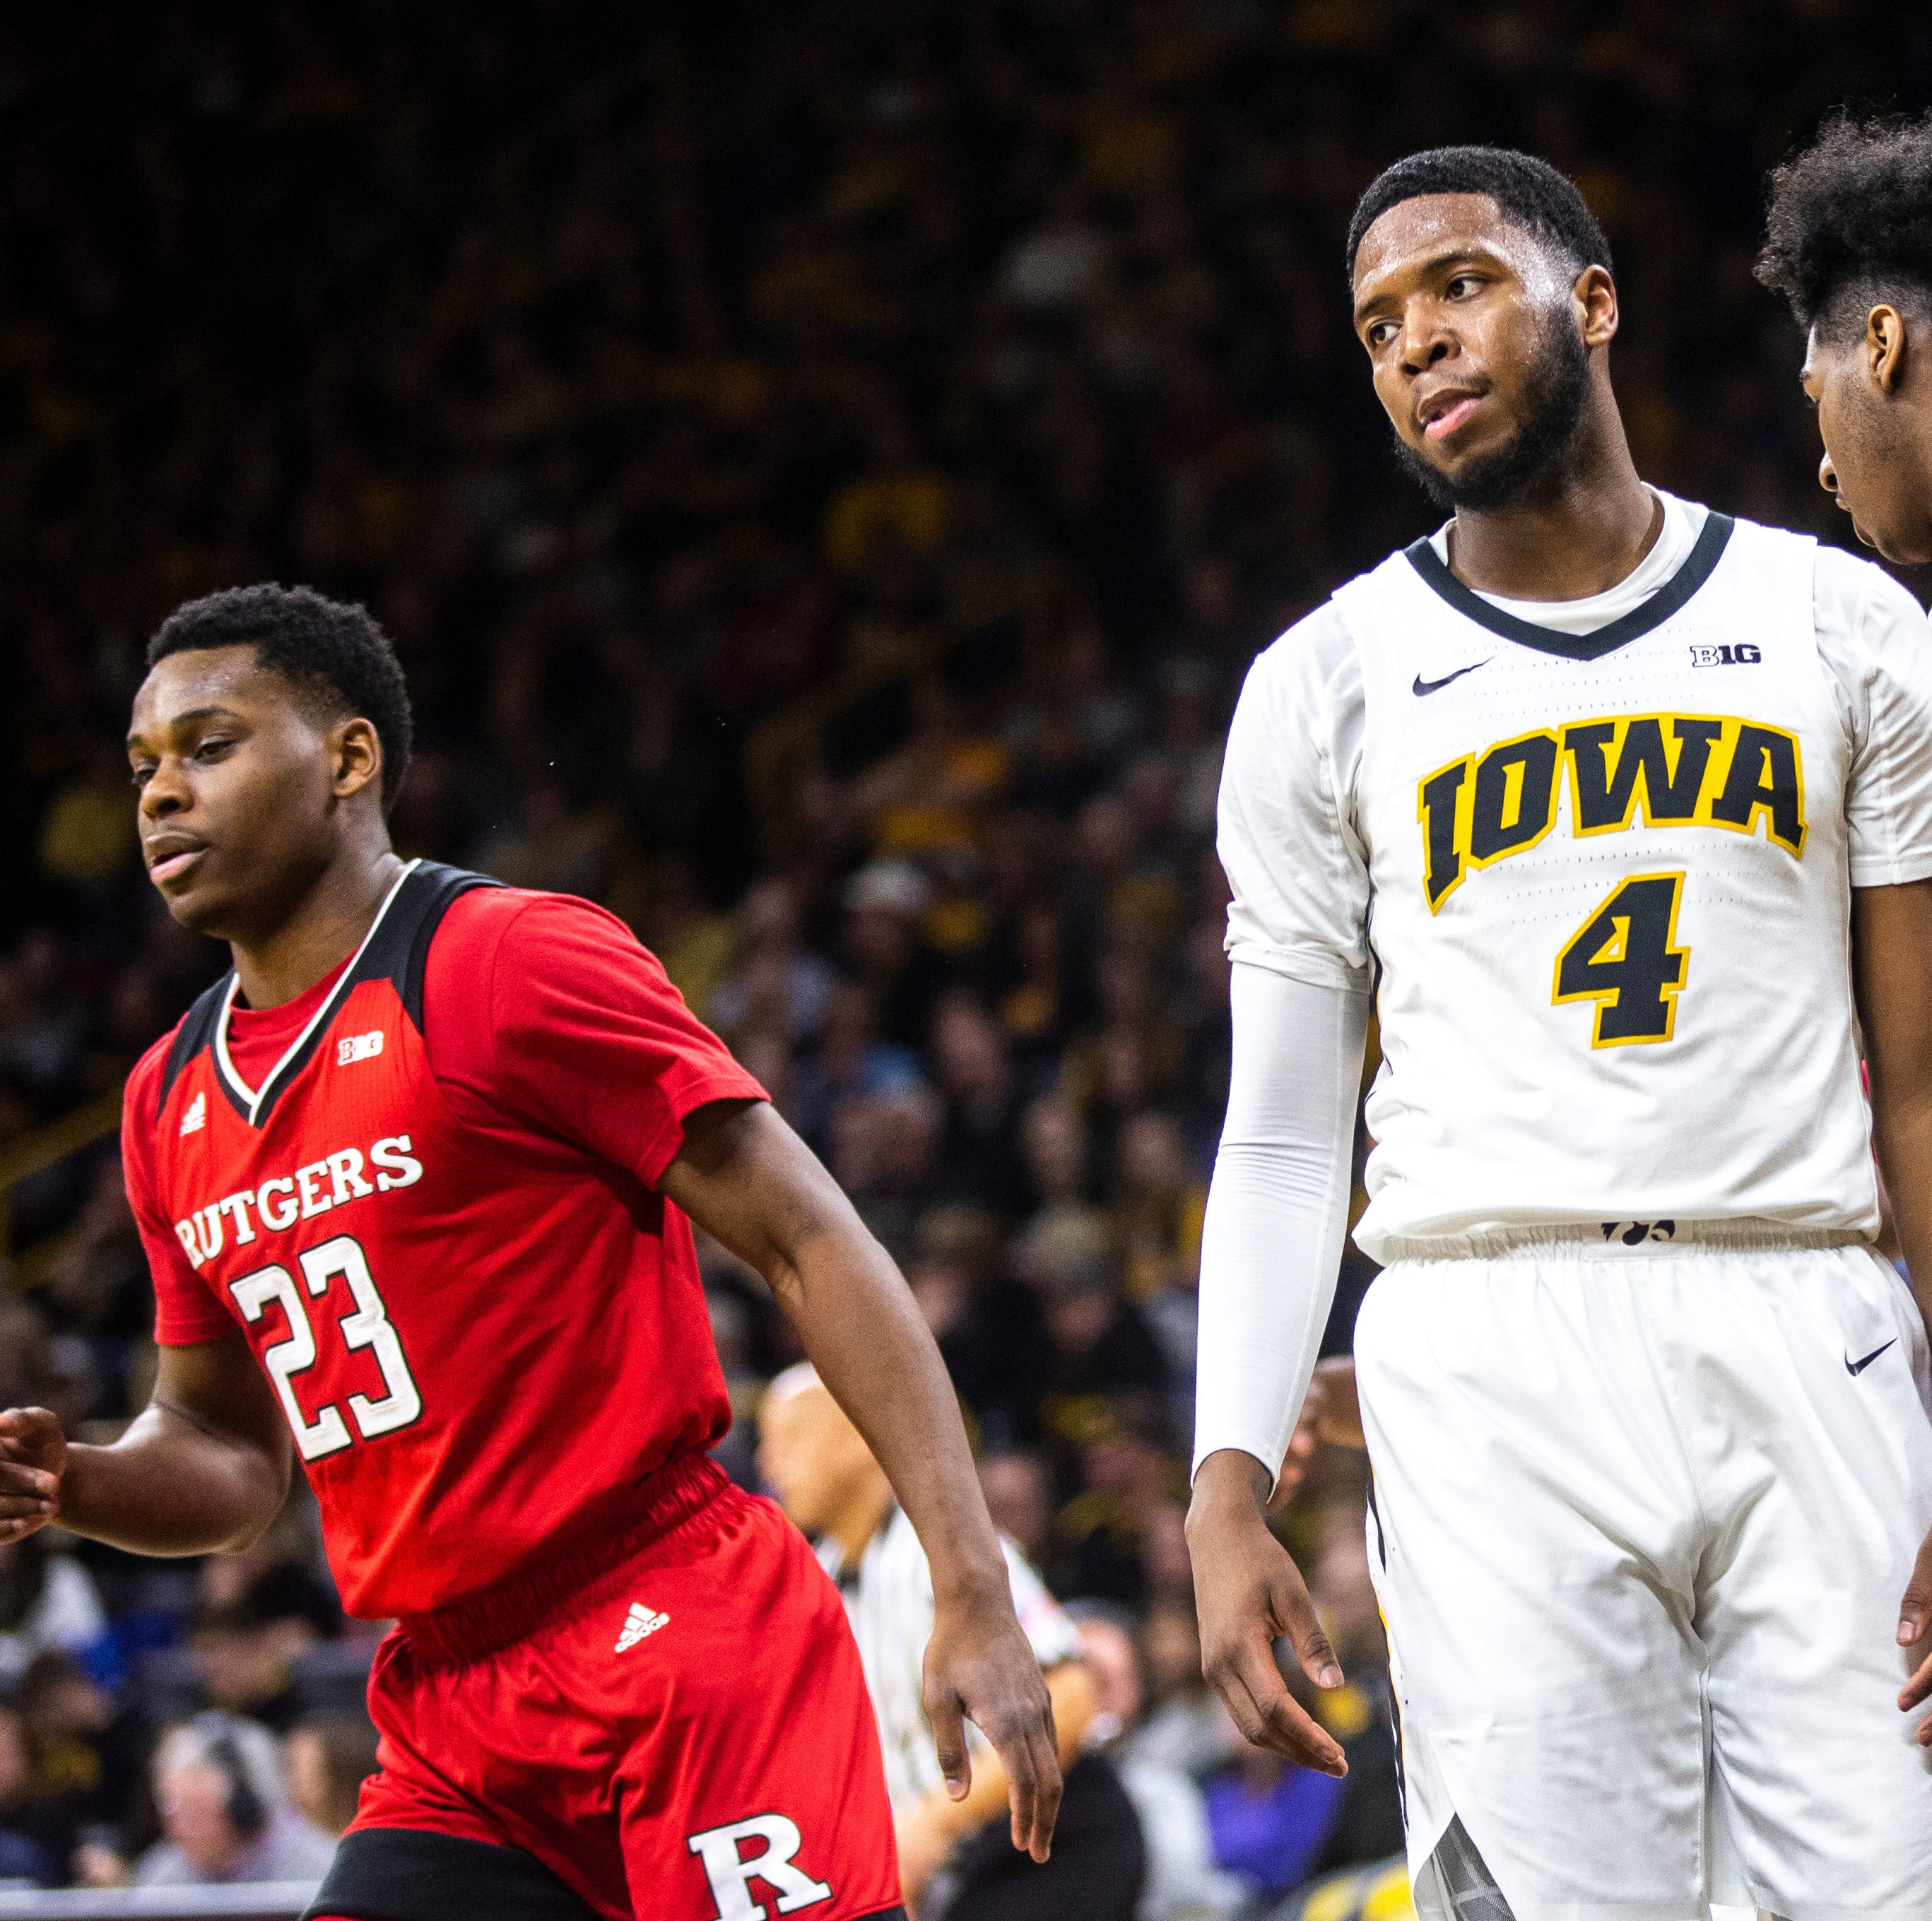 Home loss to Rutgers is costly for Iowa's NCAA Tournament seeding